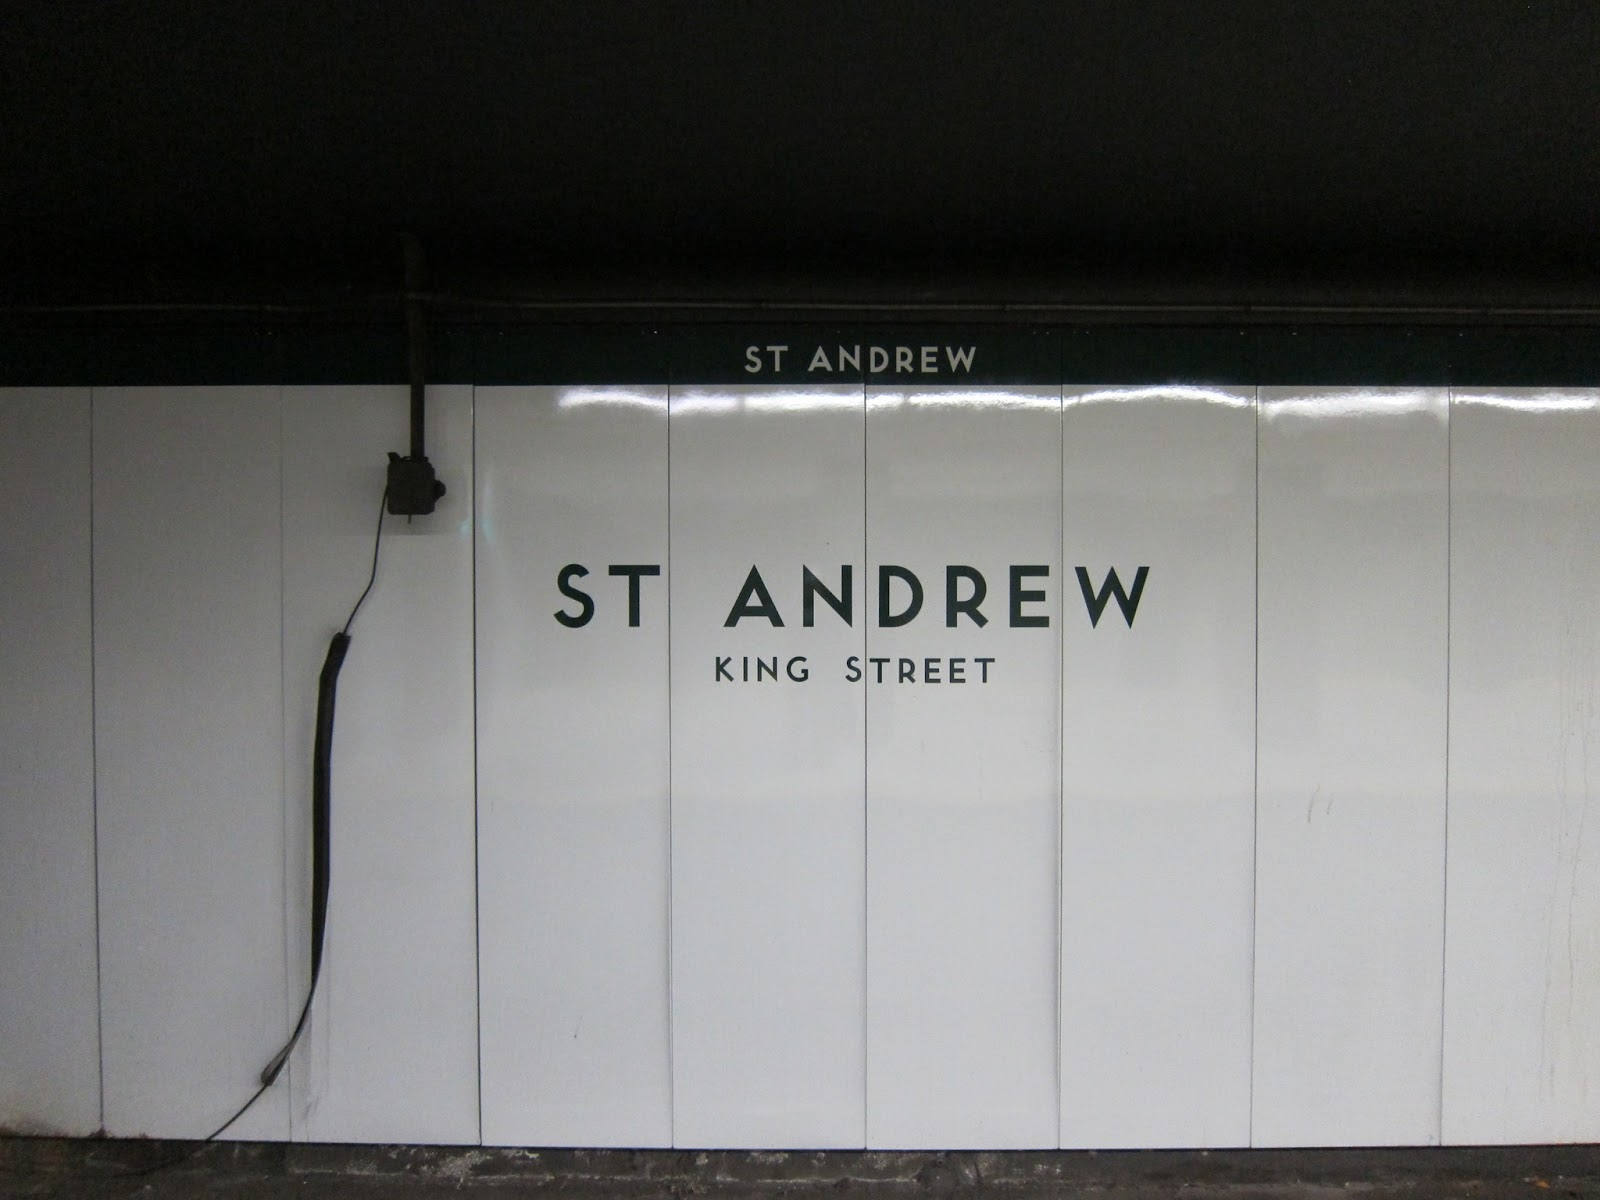 Station identification panelling for St. Andrew